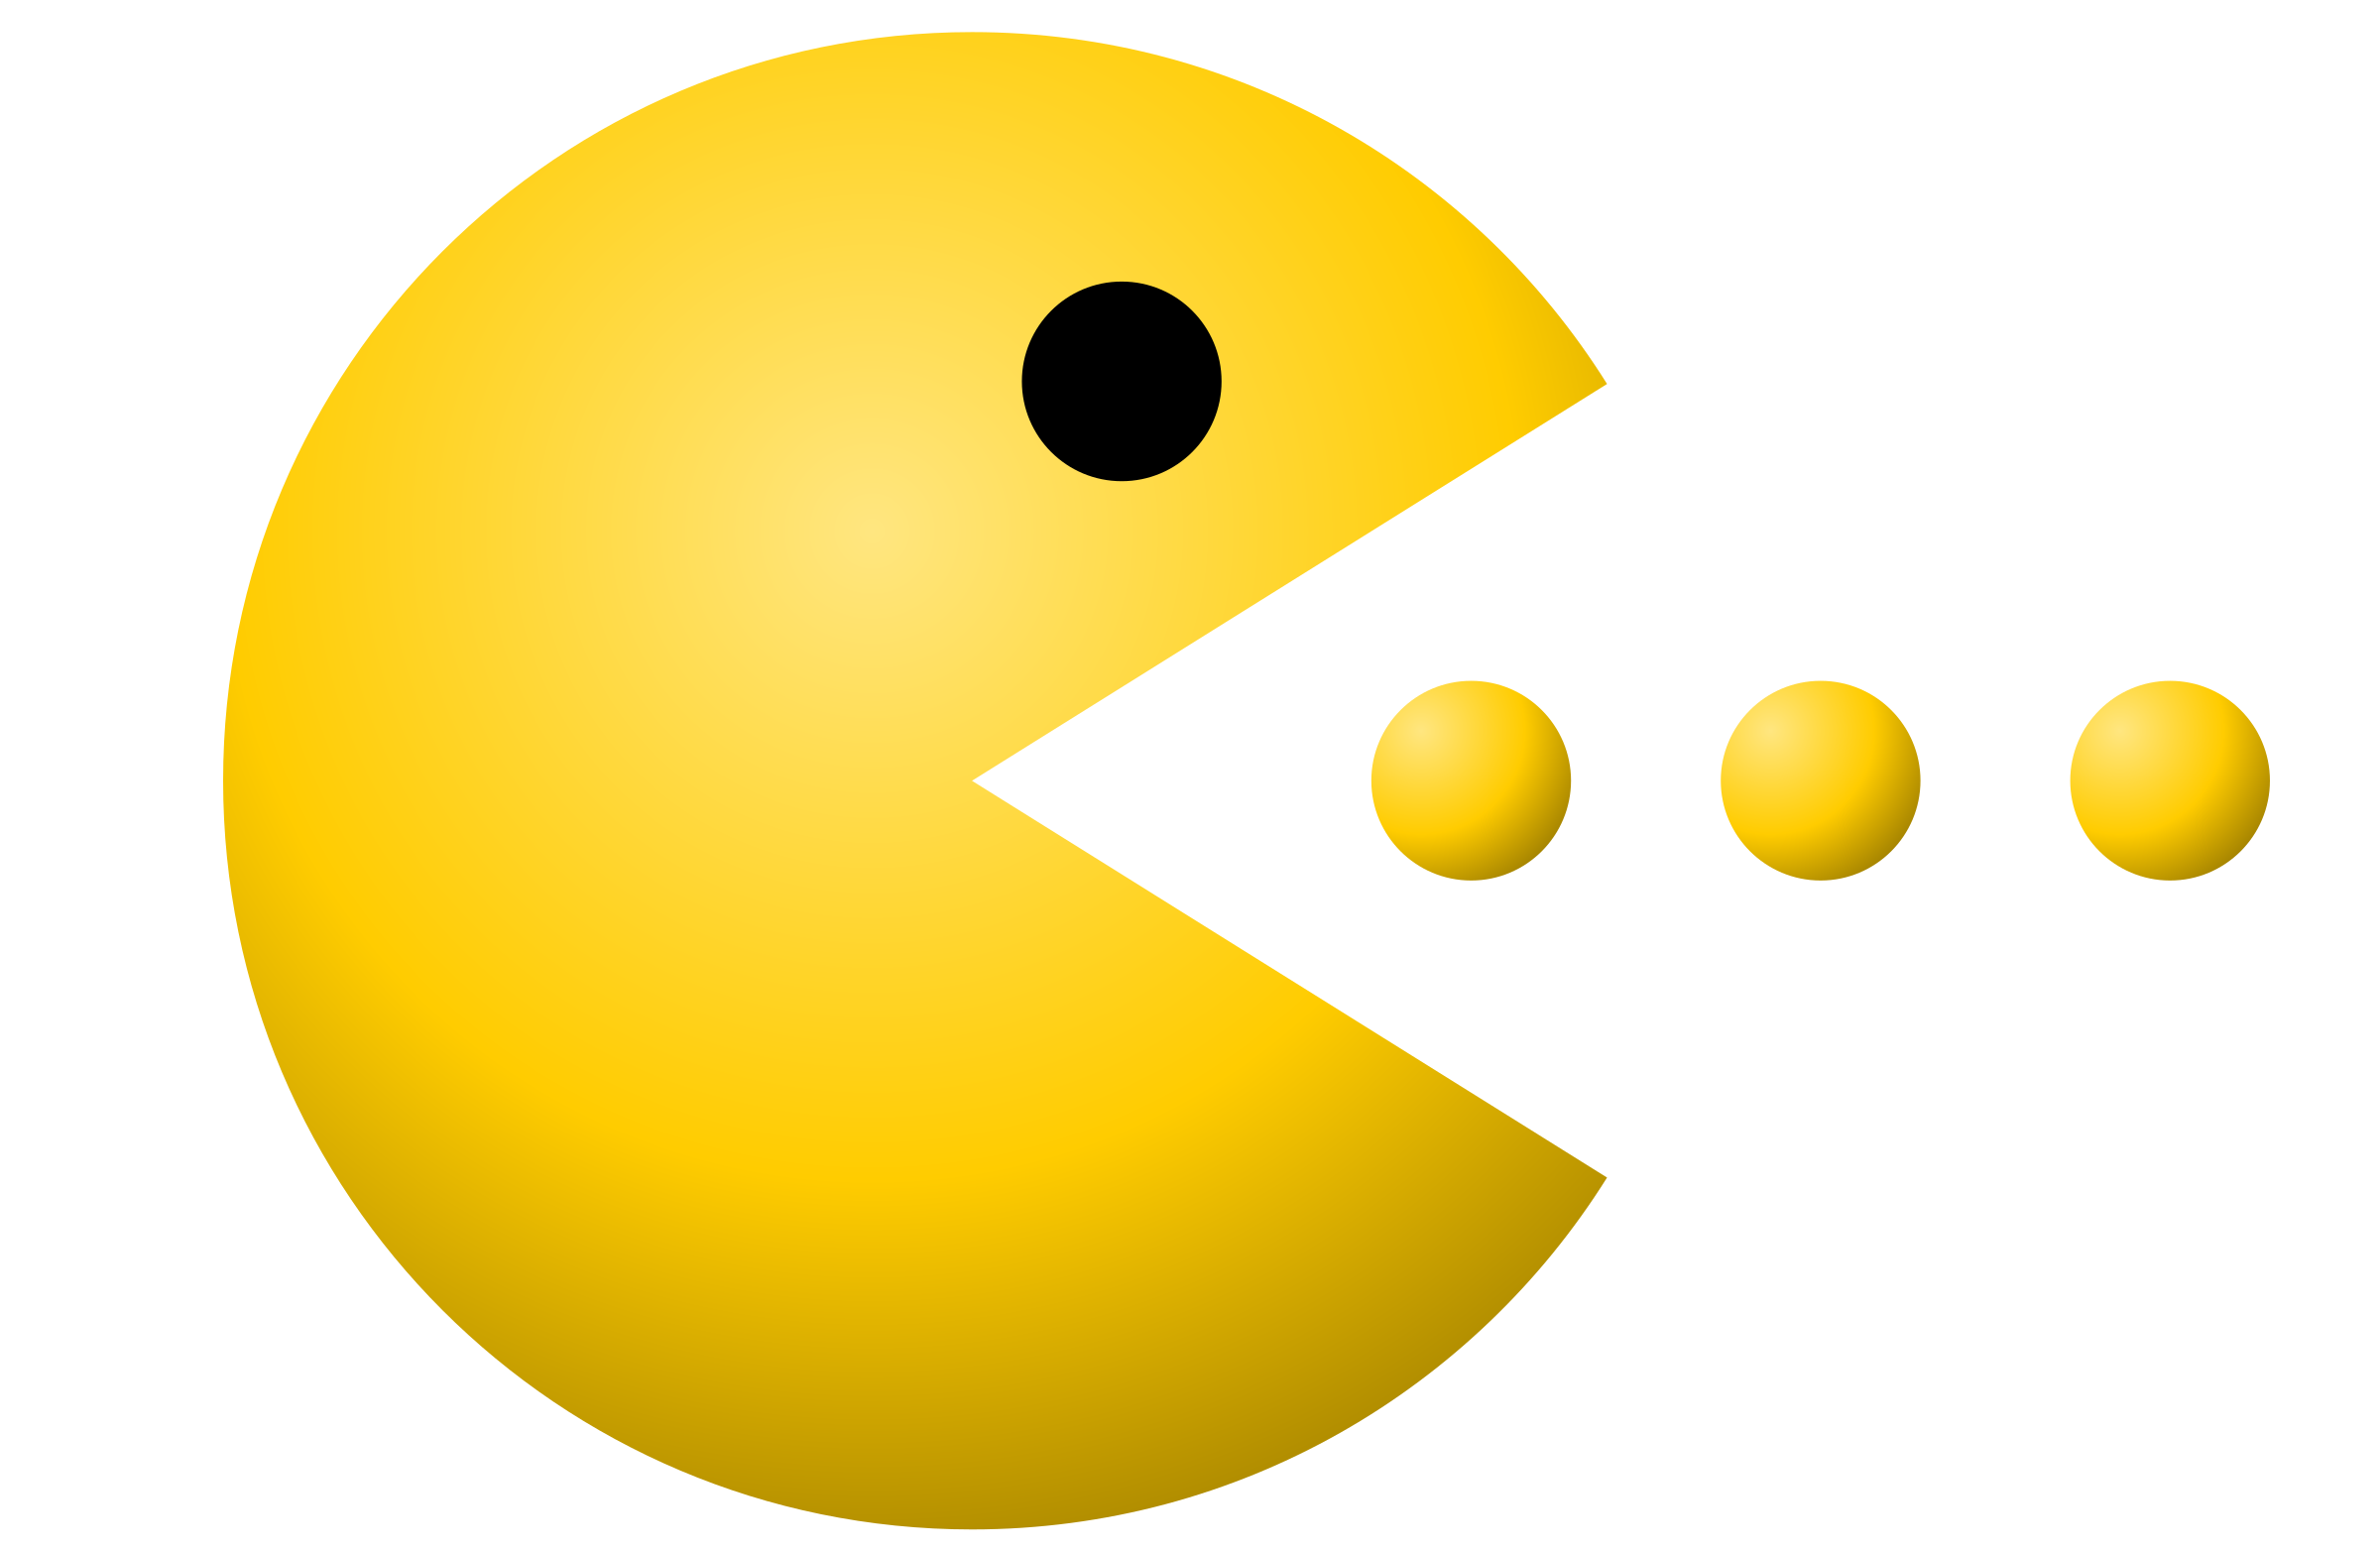 Pac man icons png. Pacman clipart orange